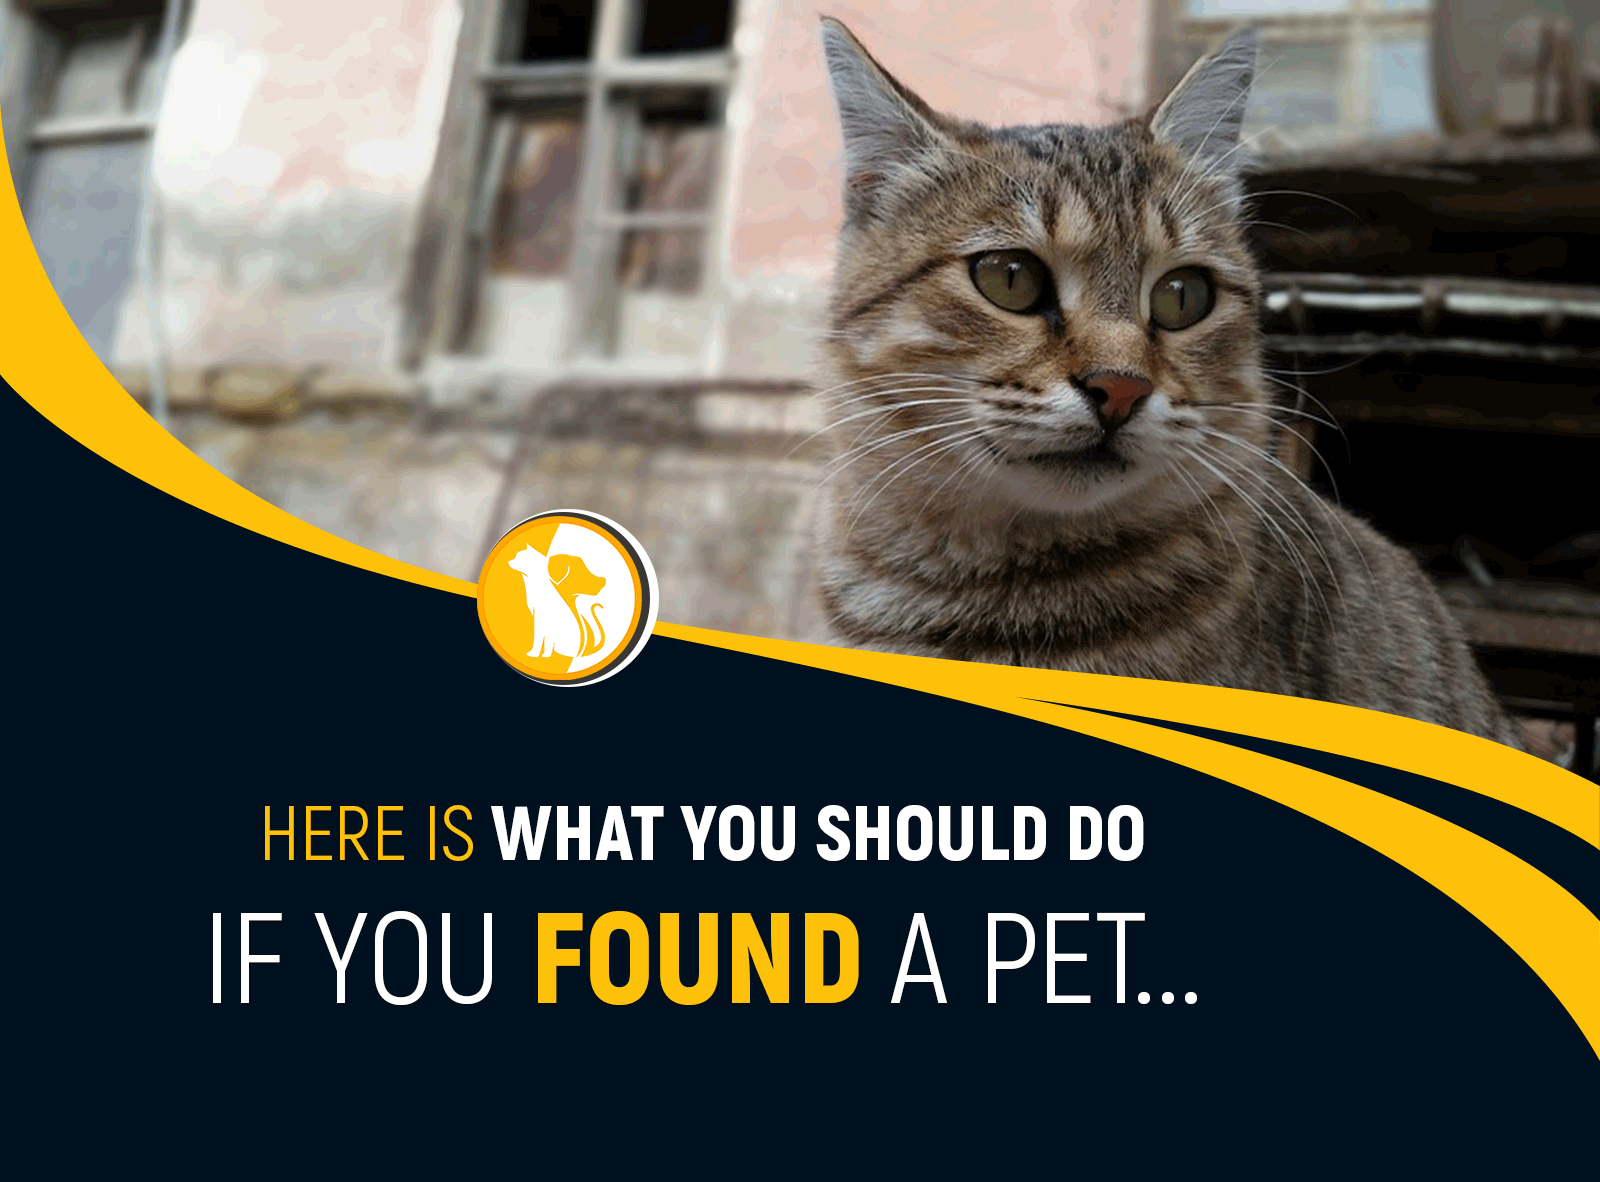 FOUND A PET? HERE WHAT YOU SHOULD DO IF YOU FOUND PETS